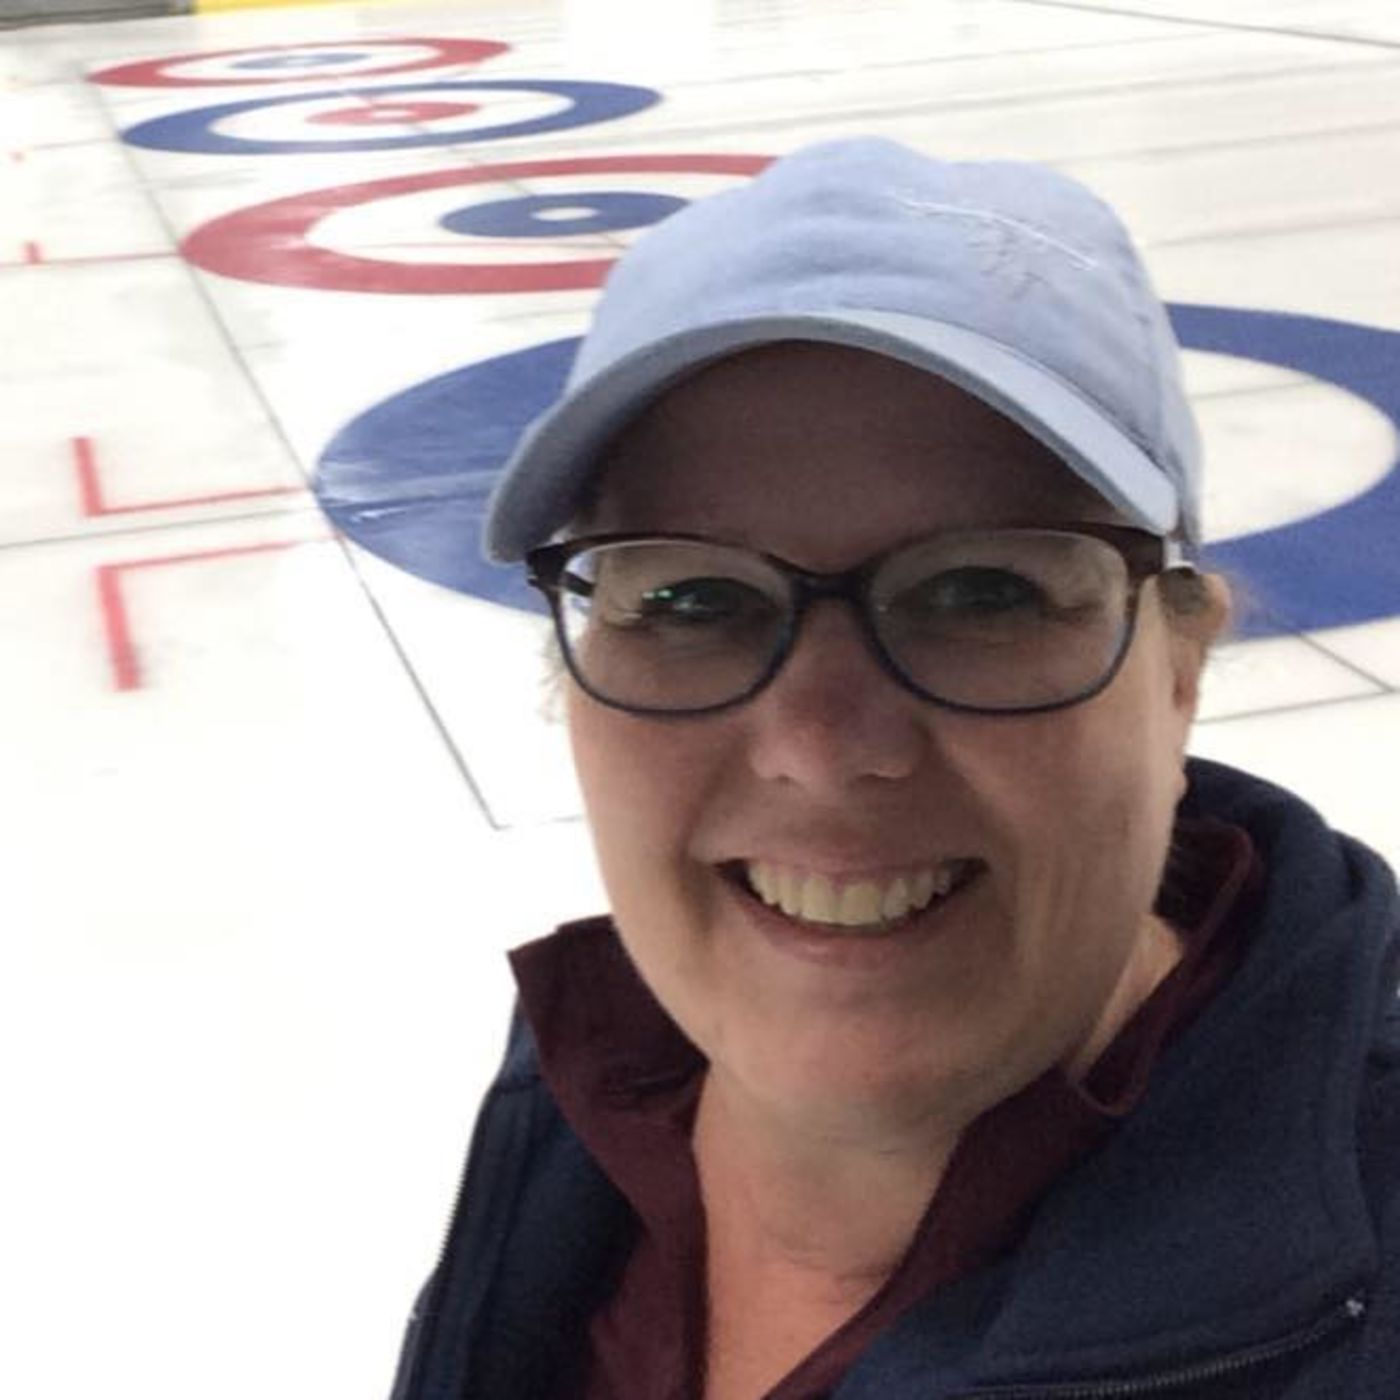 Ep. 28 - Lisa Rudolph and The Richfield Curling Club